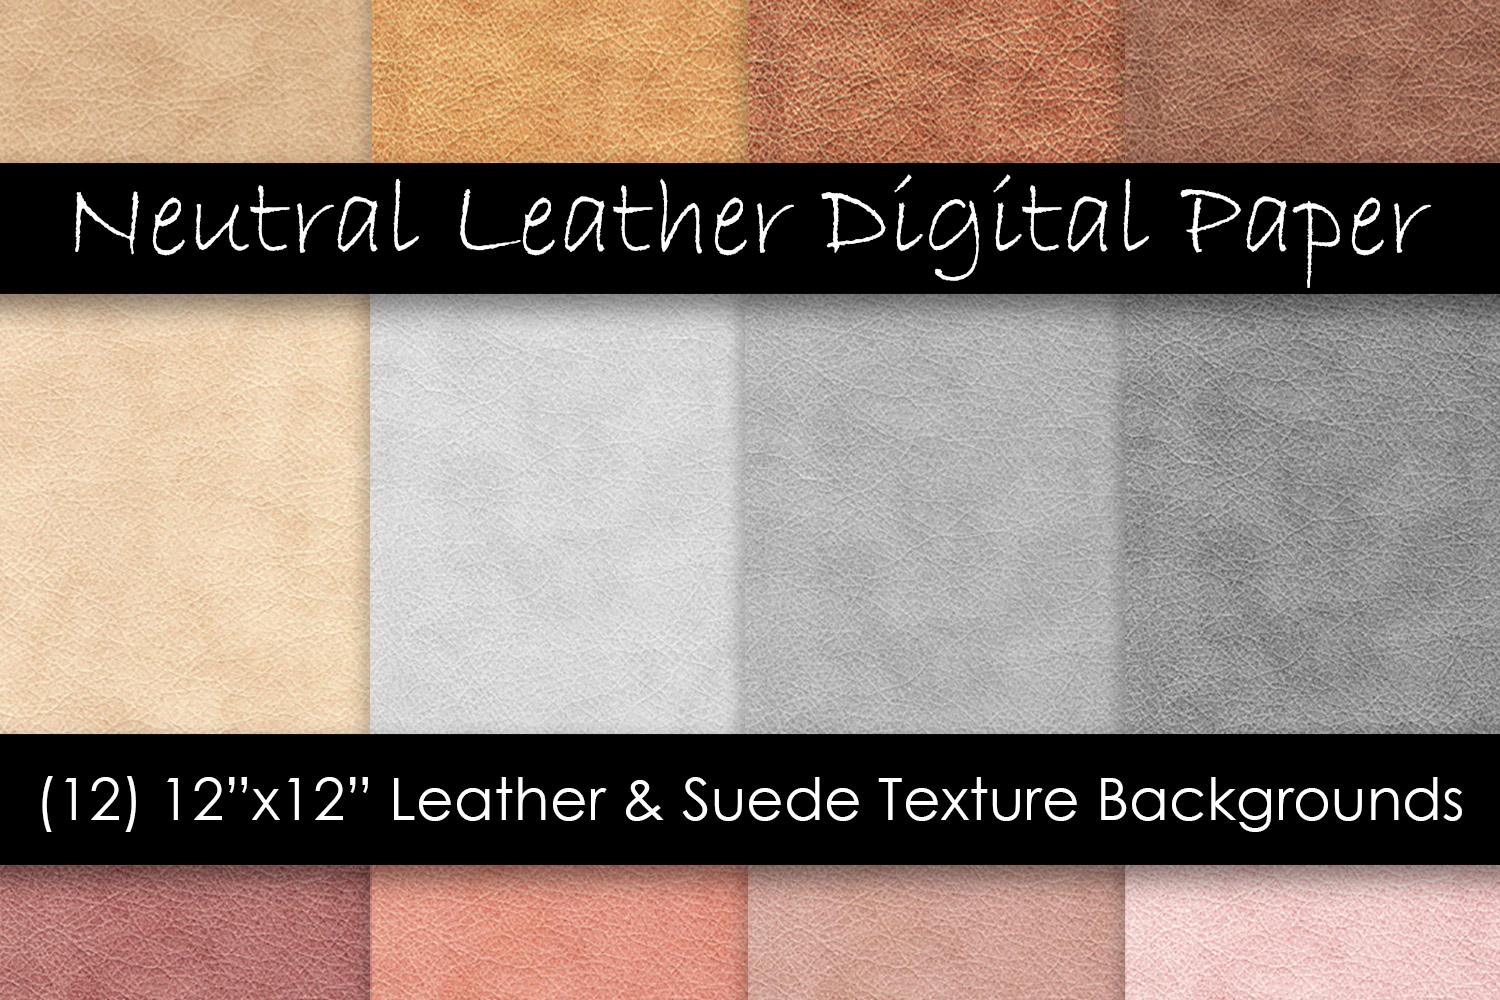 Leather/Suede Textures - Neutral Leather Digital Paper example image 1